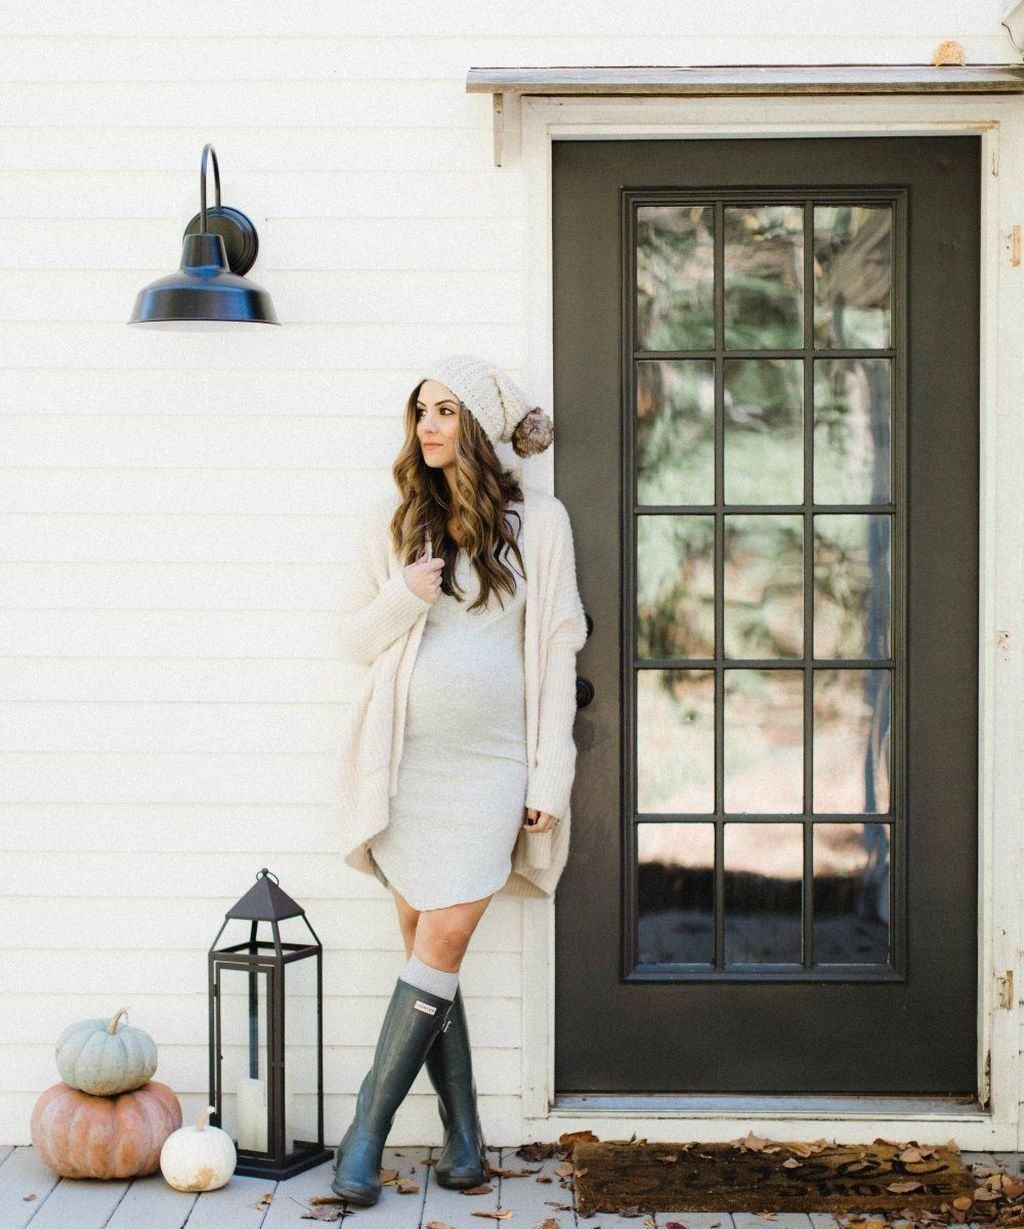 e97a707d3c897 50 Cute Maternity Outfits Ideas For Winter | Baby Bump Style | Cute ...